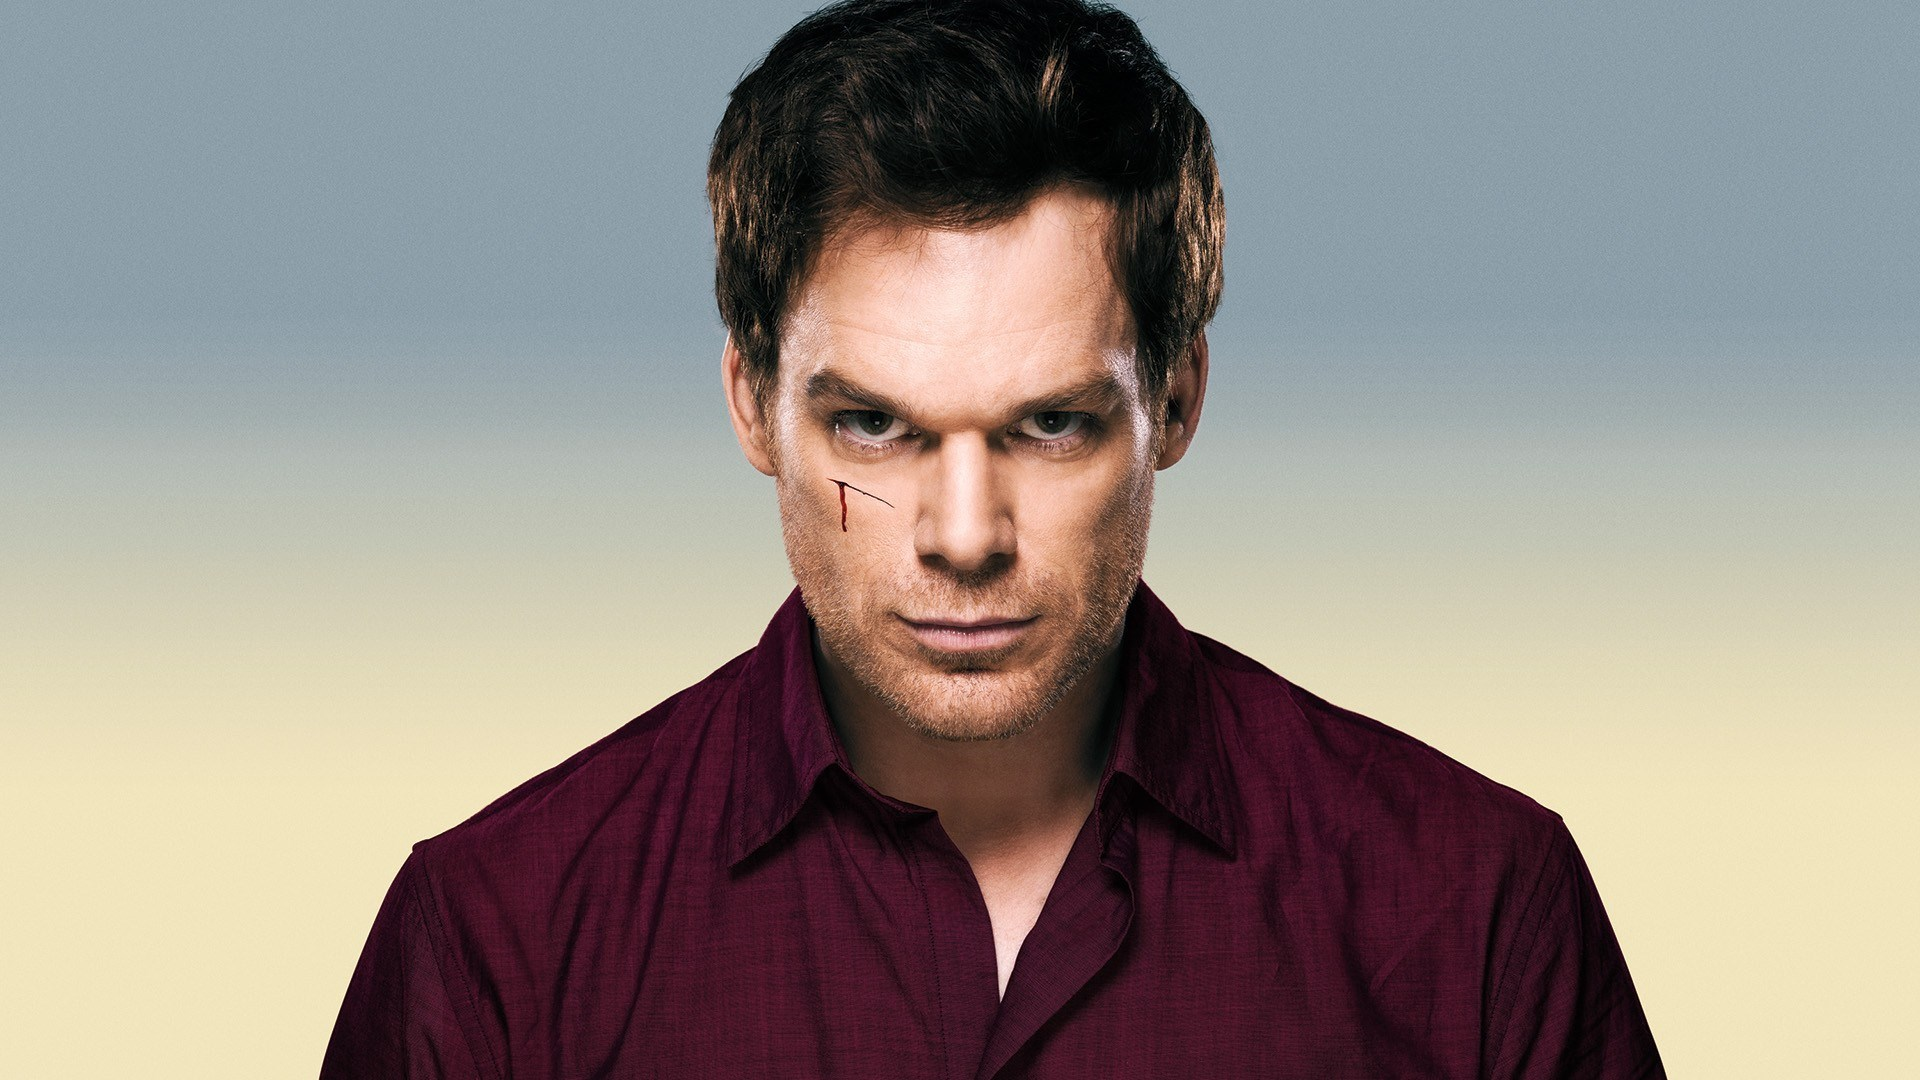 Dexter Wallpaper by Martz on DeviantArt 1920x1080